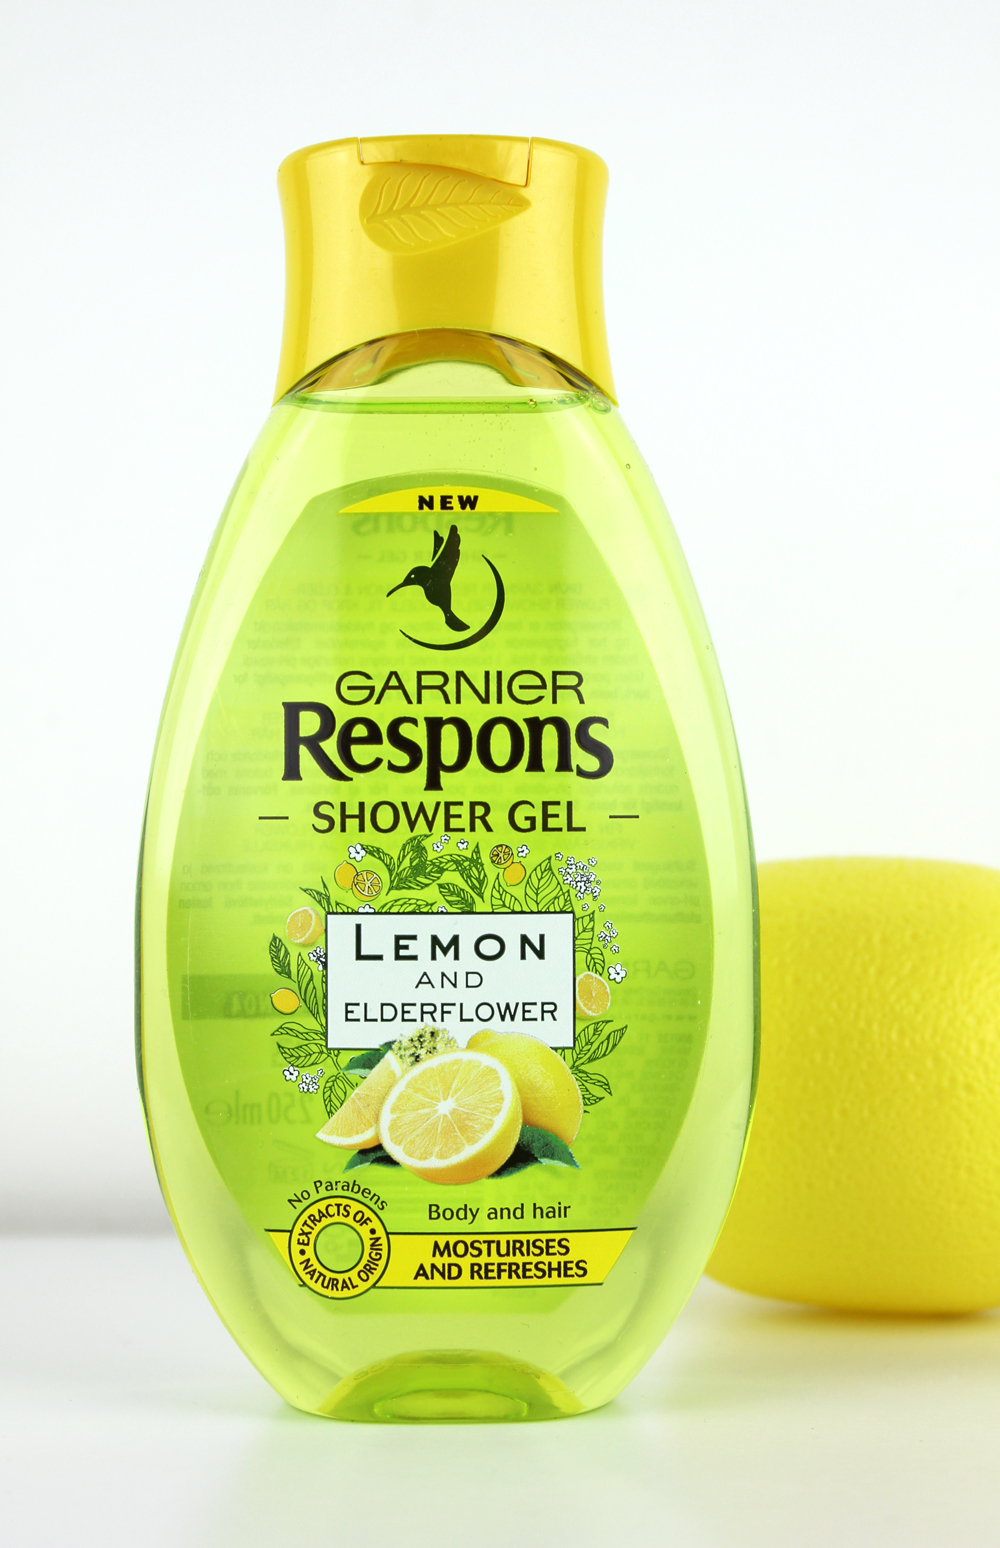 Garnier Respons Shower Gel Lemon and Elderflower